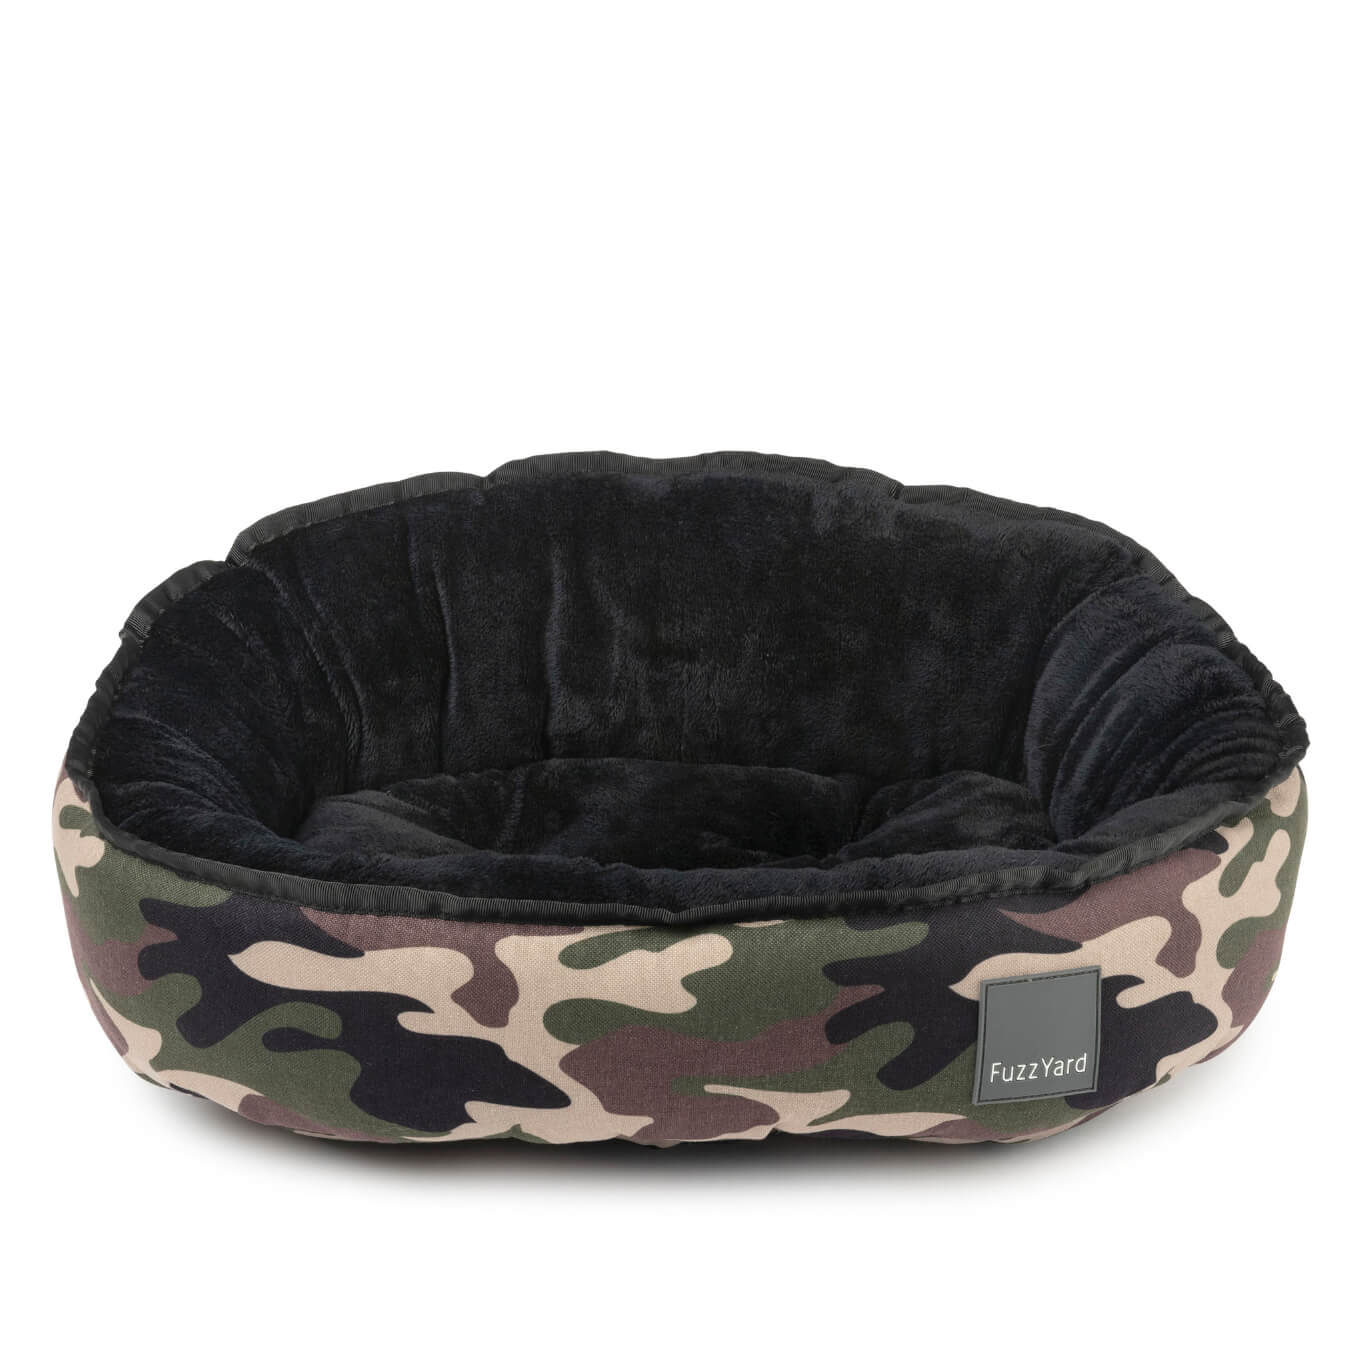 FuzzYard Camo Reversible Pet Bed - Vanillapup Online Pet Store